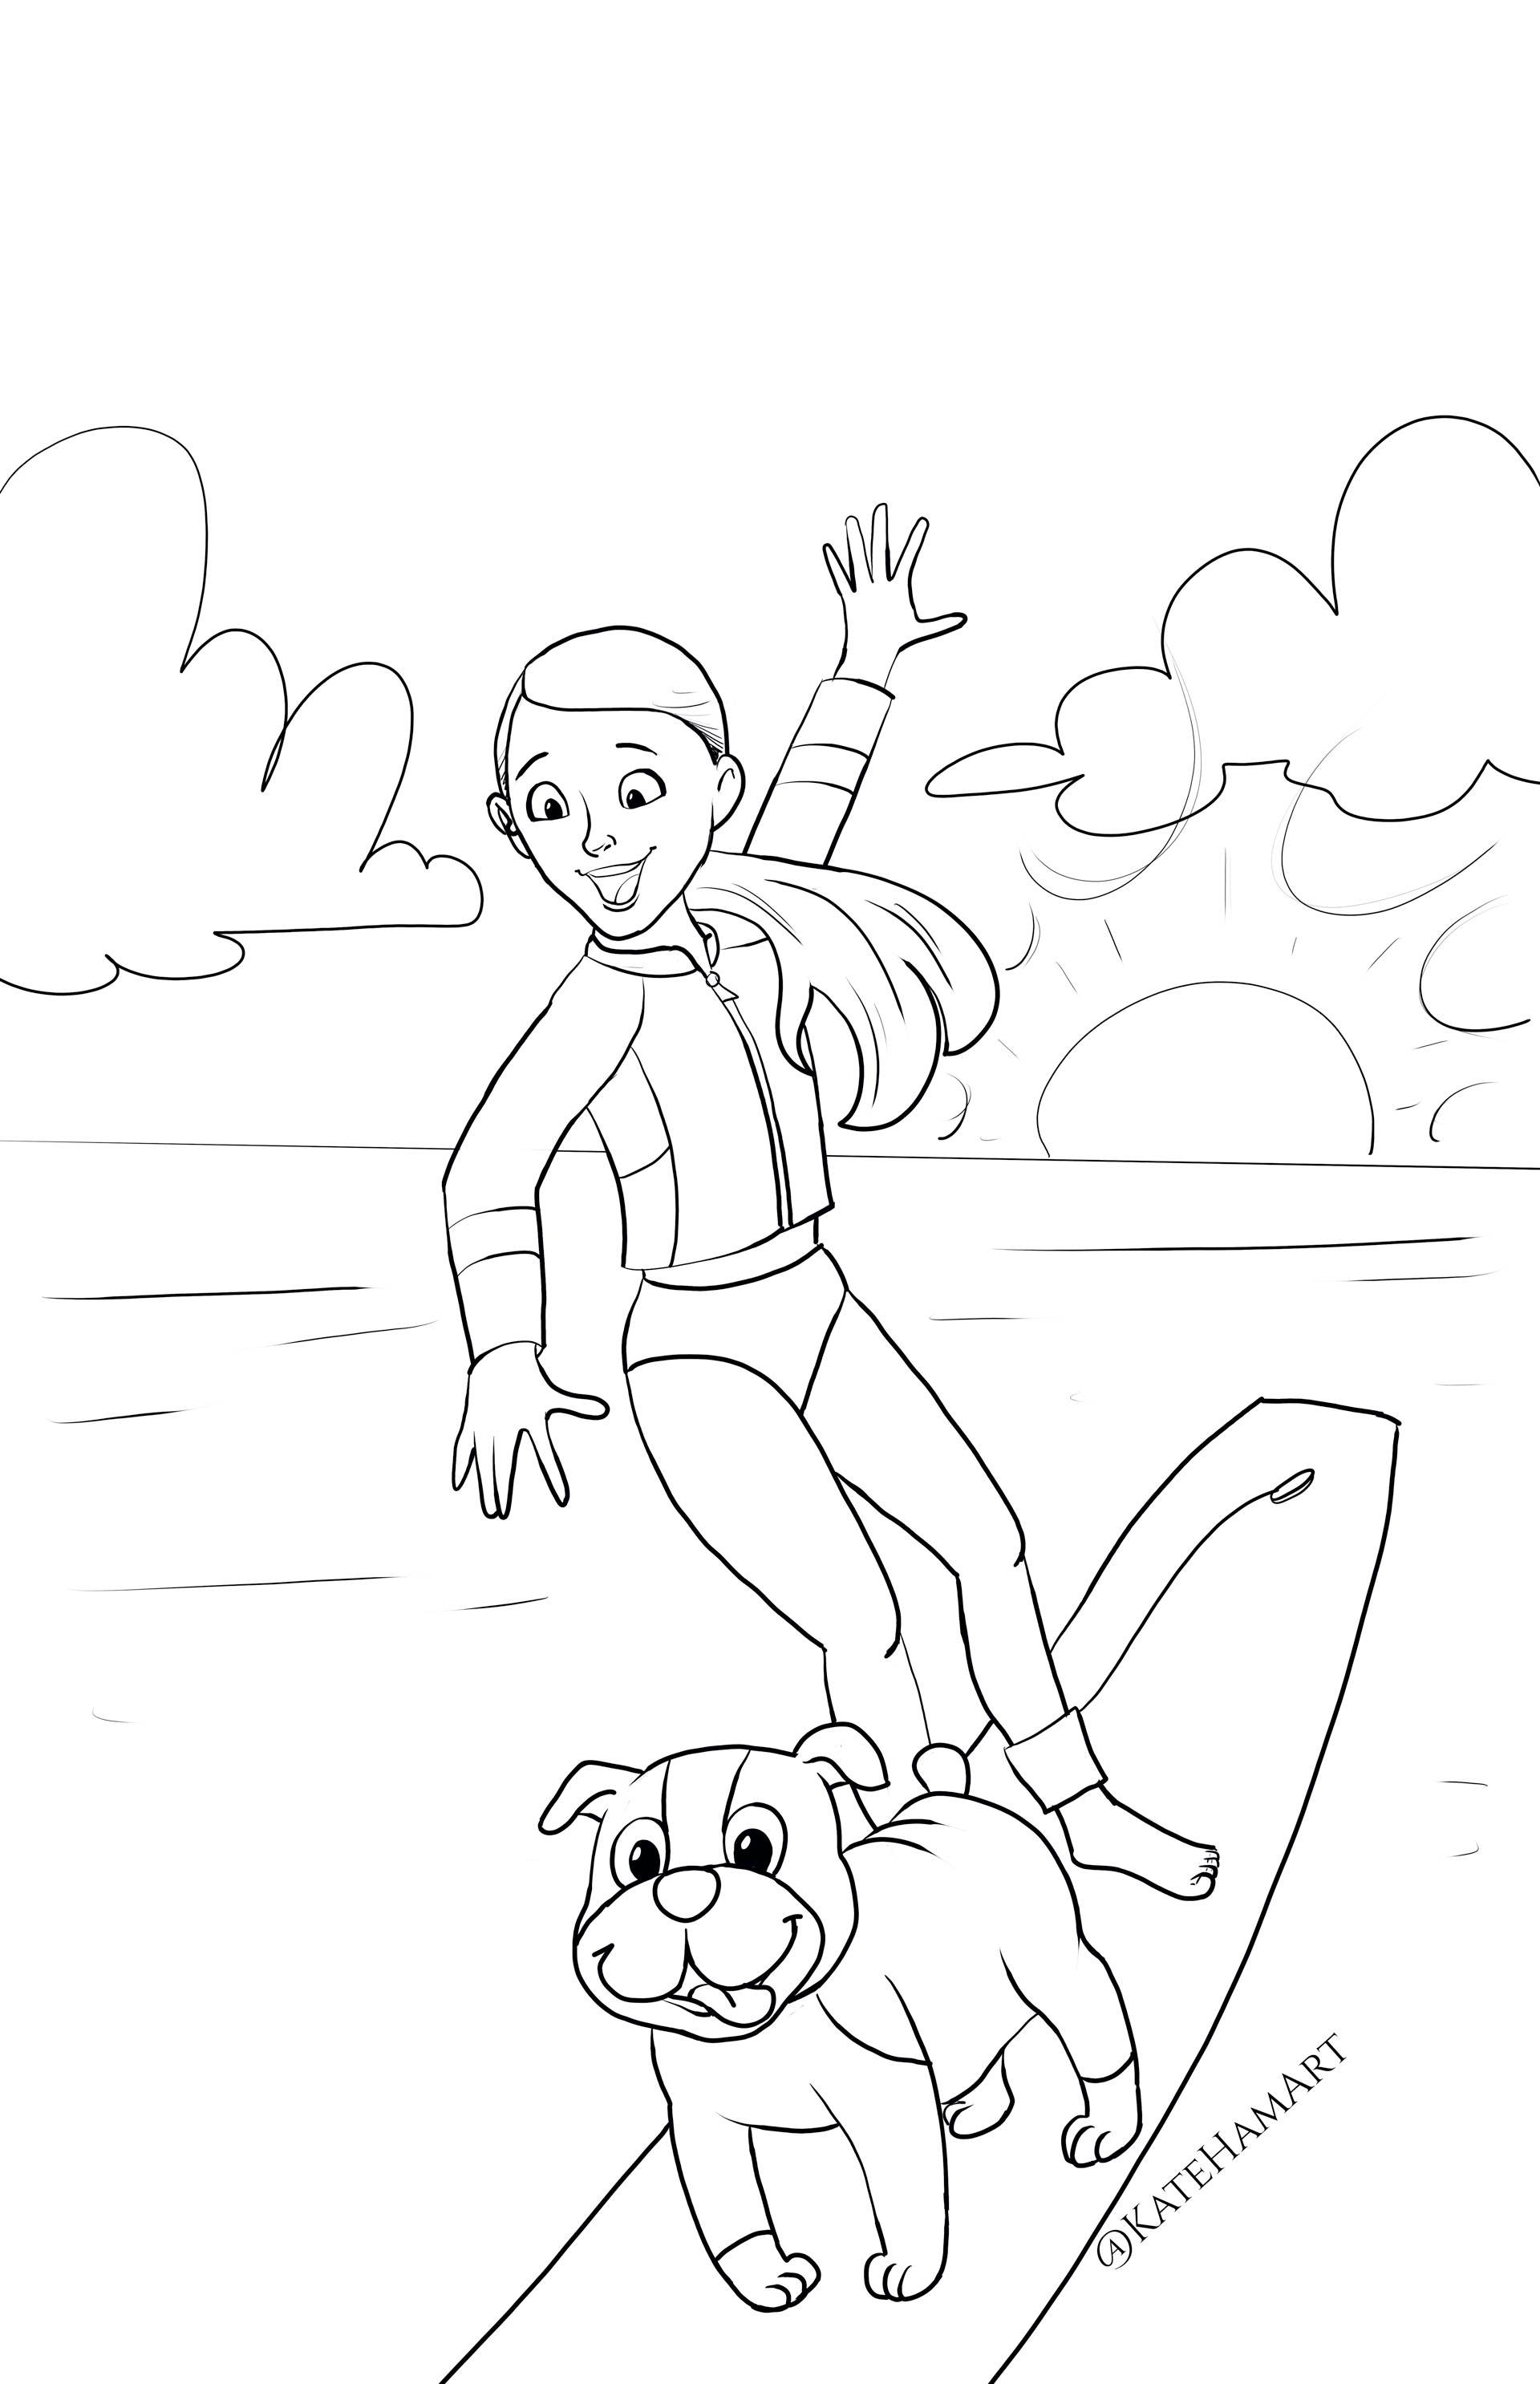 American Girl Doll Coloring Pages : american, coloring, pages, American, Kendrick, Printable, Coloring, Sheet